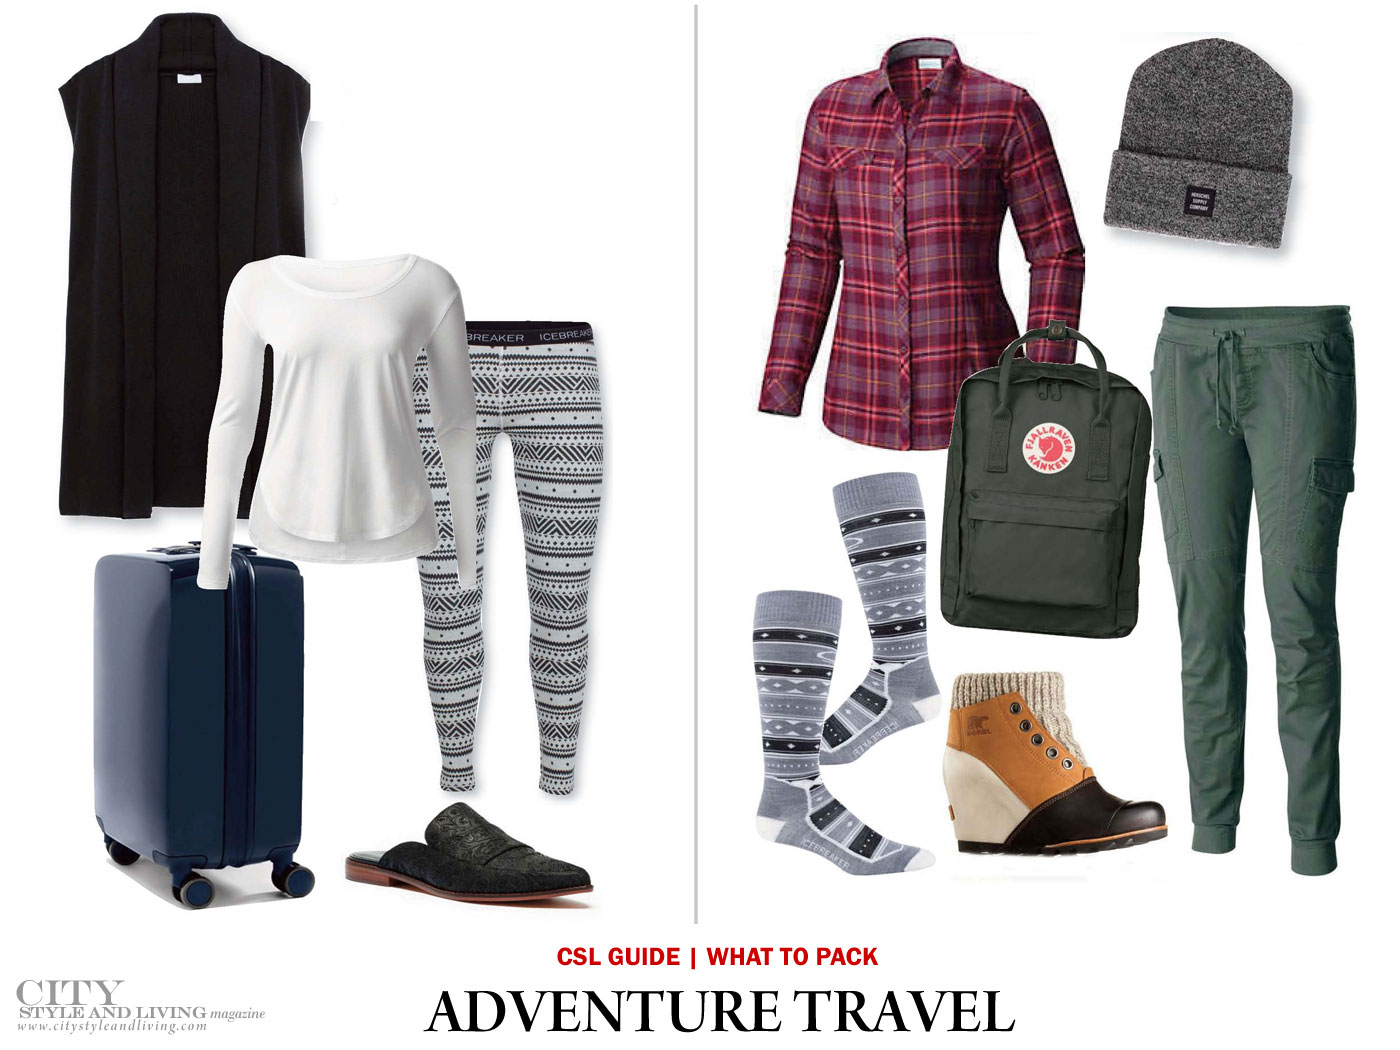 City Style and Living Magazine what to wear for adventure travel